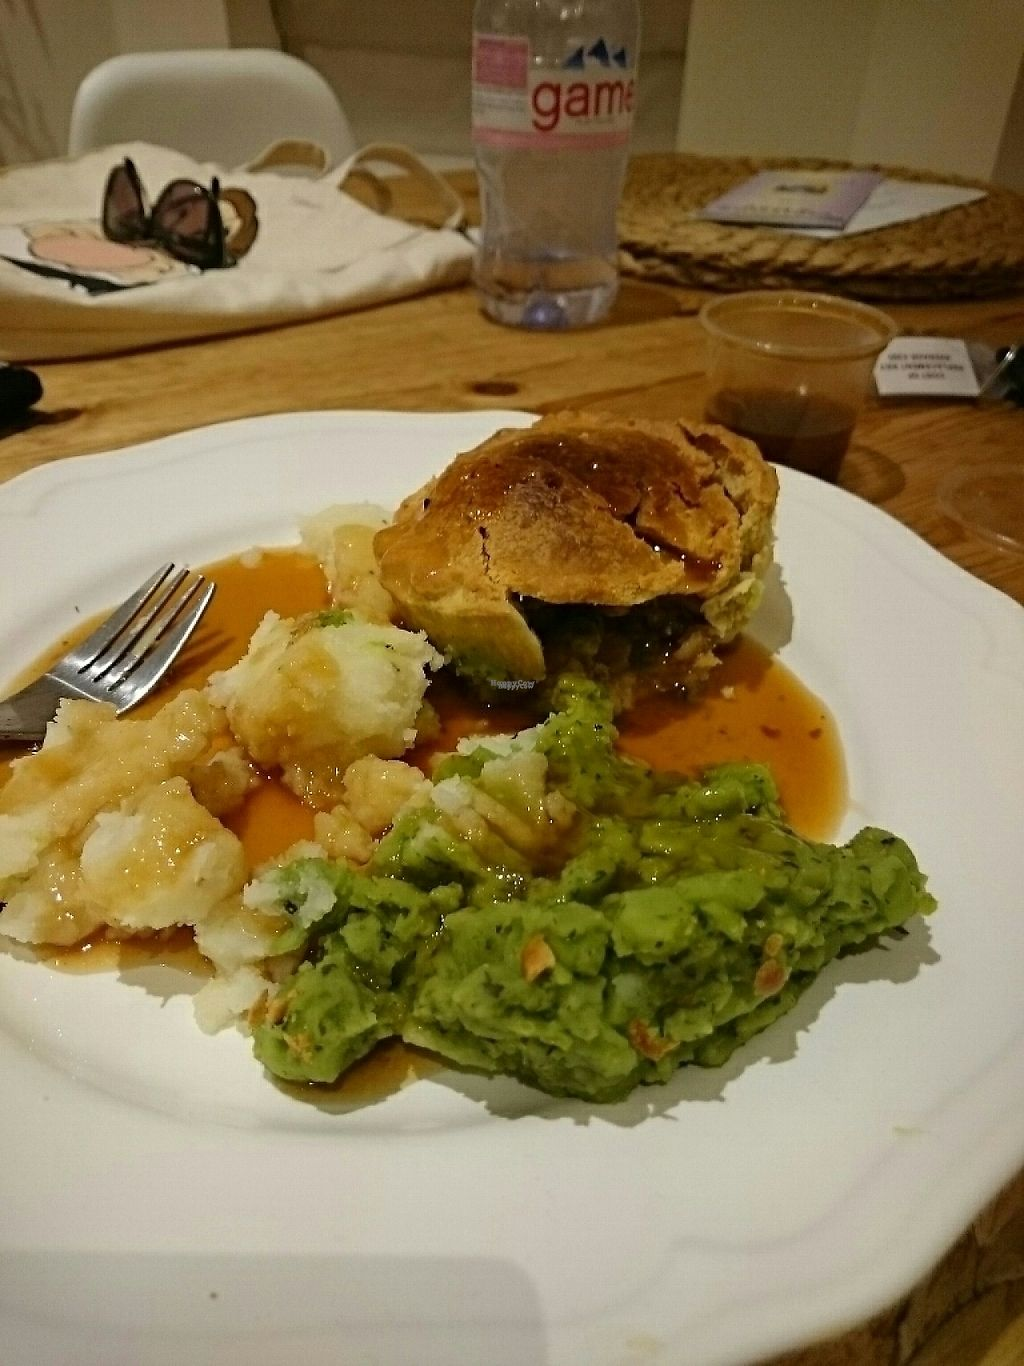 """Photo of Pie & Vinyl  by <a href=""""/members/profile/BPvegan"""">BPvegan</a> <br/>The Pie-Mosa as takeaway. Parsnip, potatoes, peas and onions <br/> November 28, 2016  - <a href='/contact/abuse/image/78606/195388'>Report</a>"""